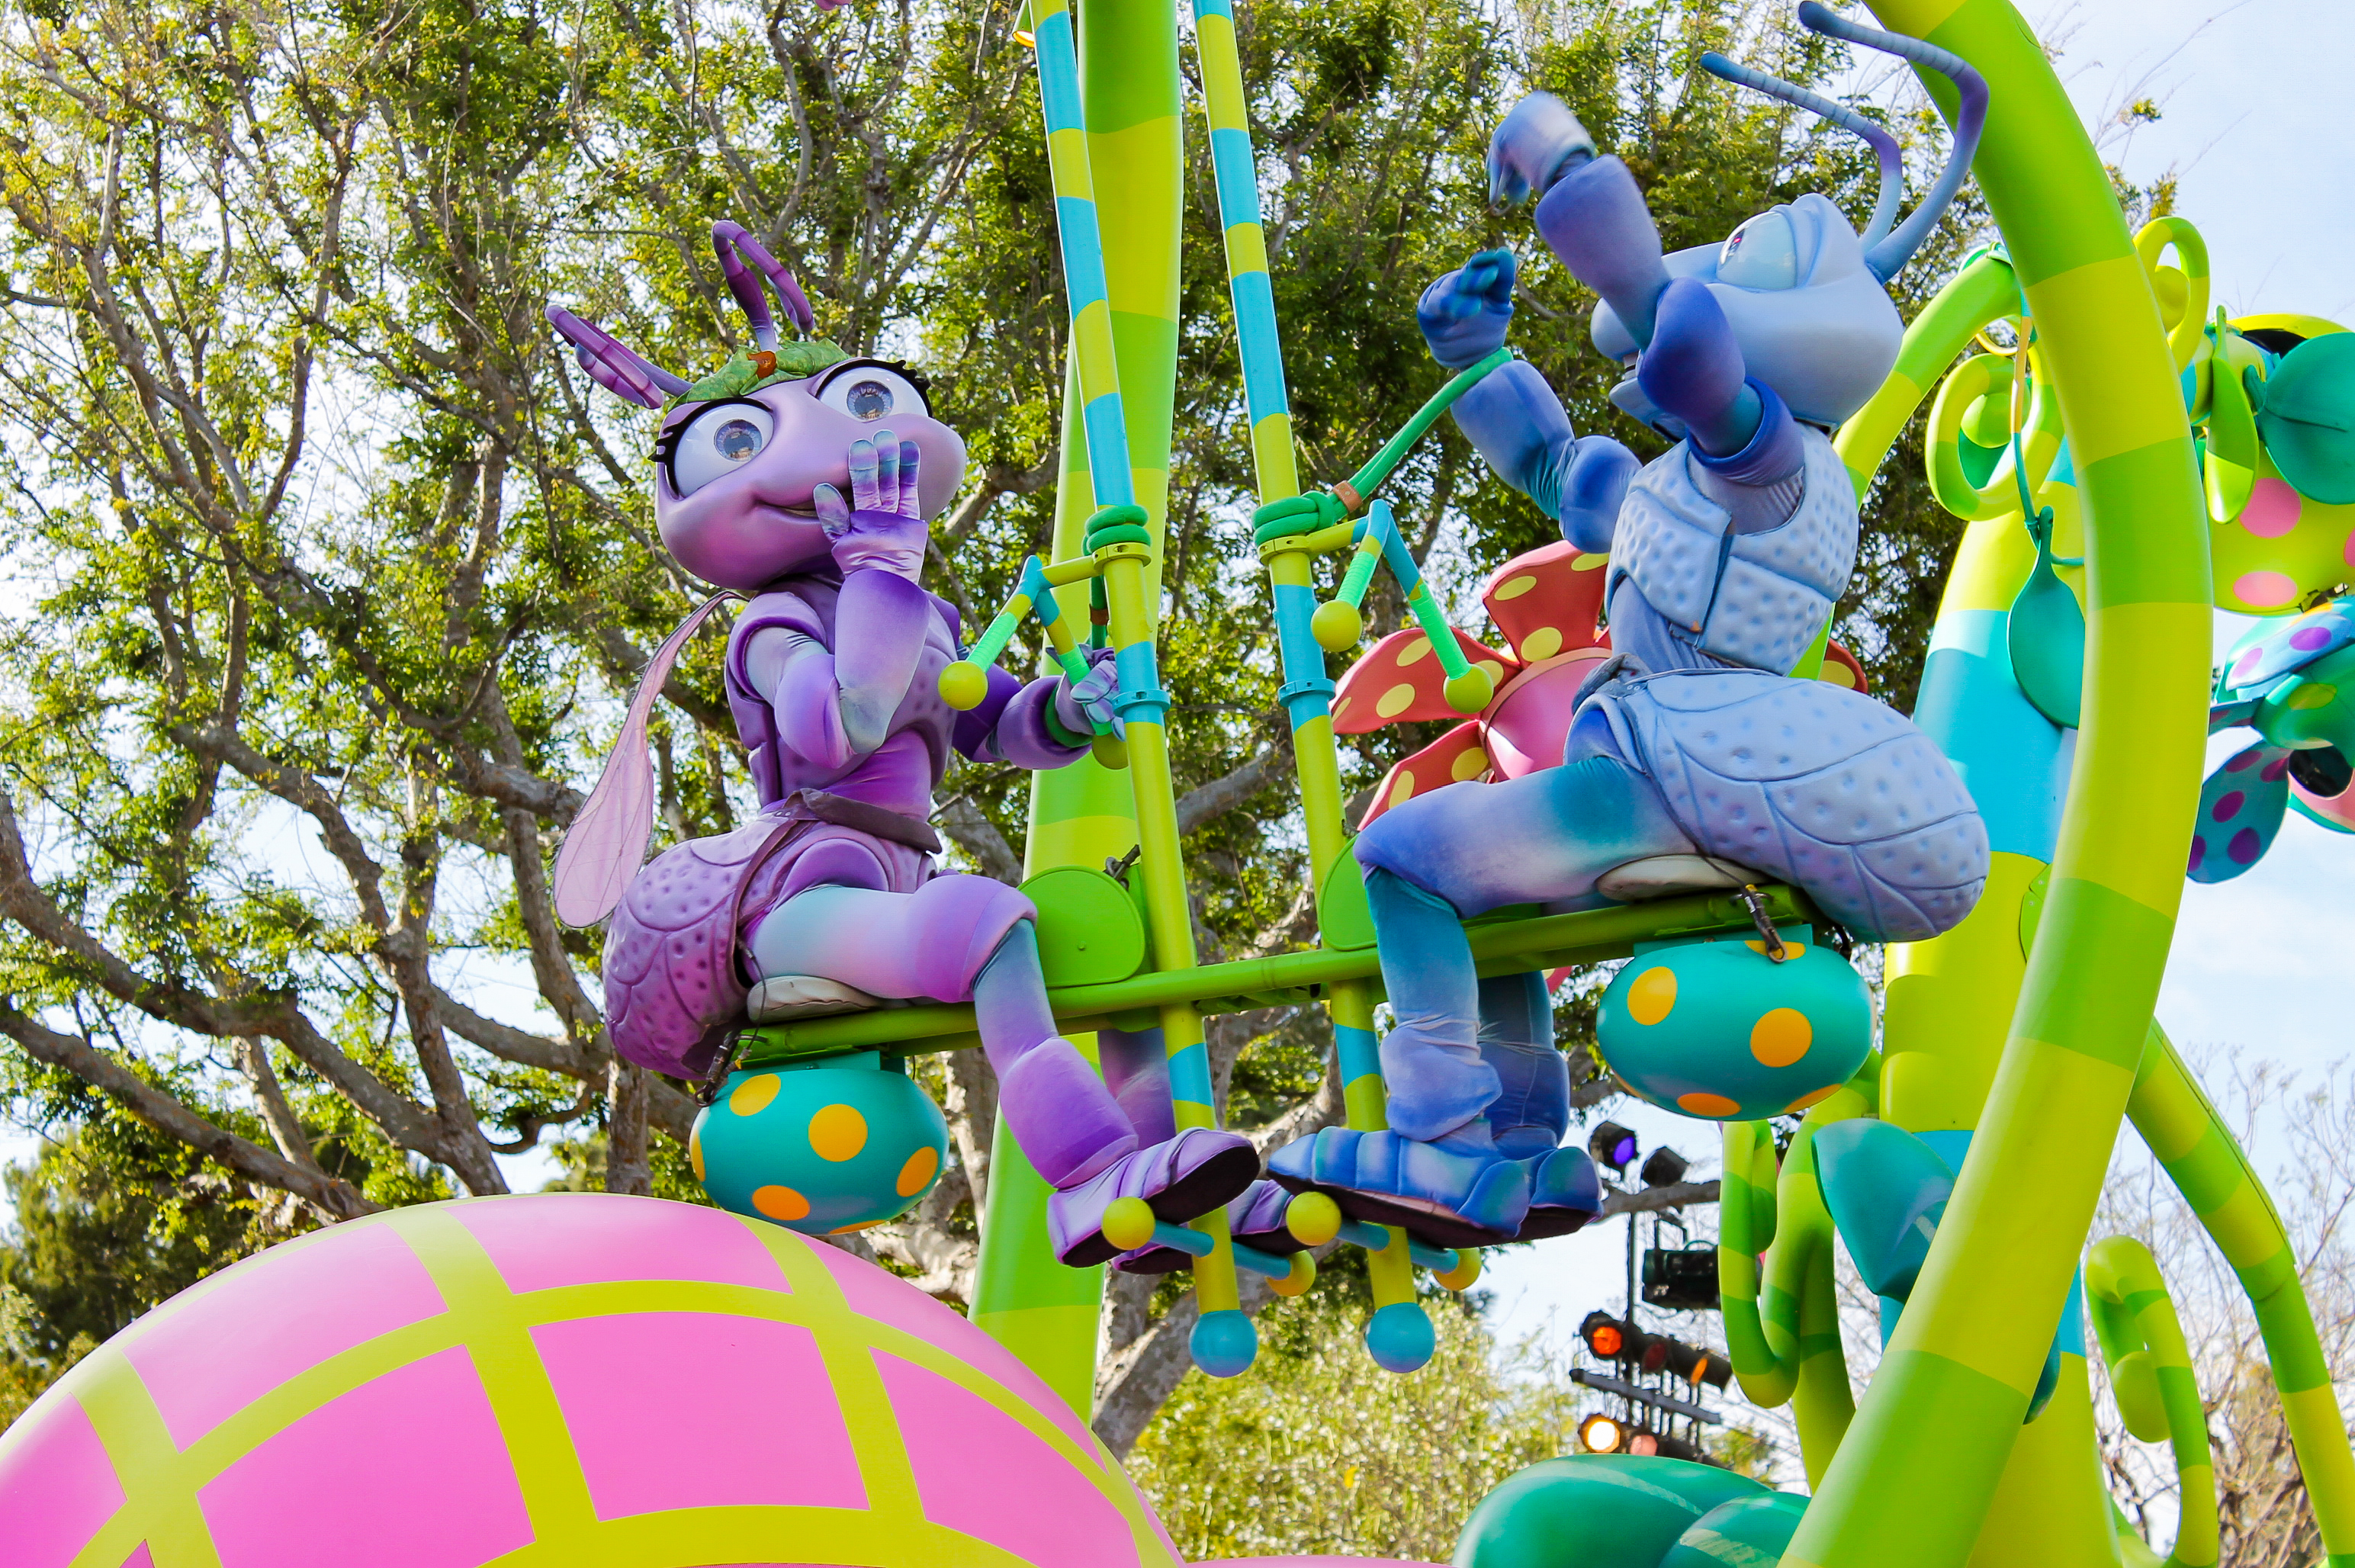 Disneyland Pixarfest: A Bug's Life Float